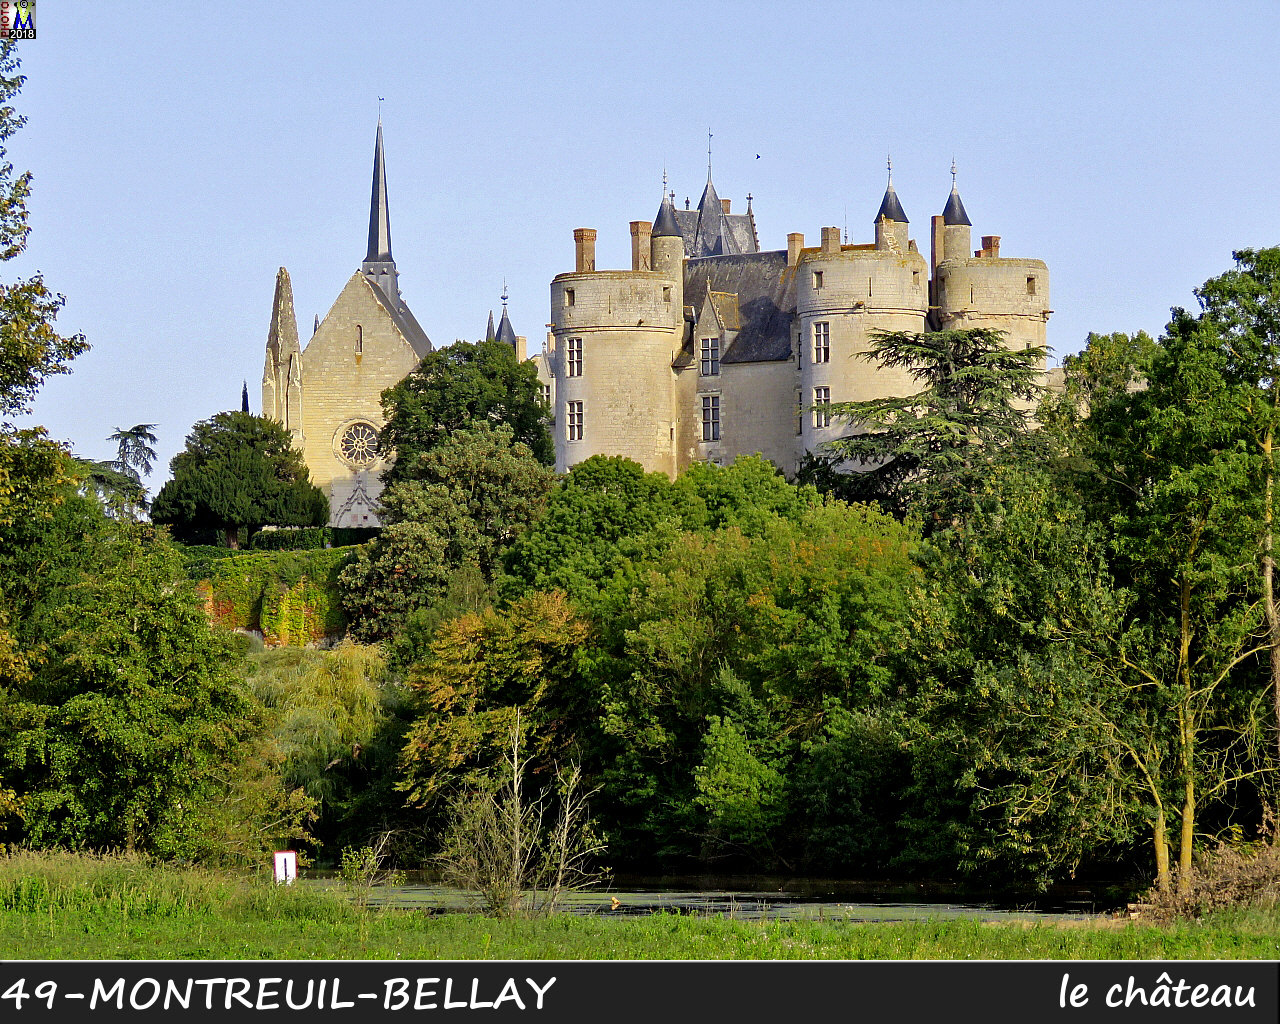 49MONTREUIL-BELLAY_chateau_1014.jpg